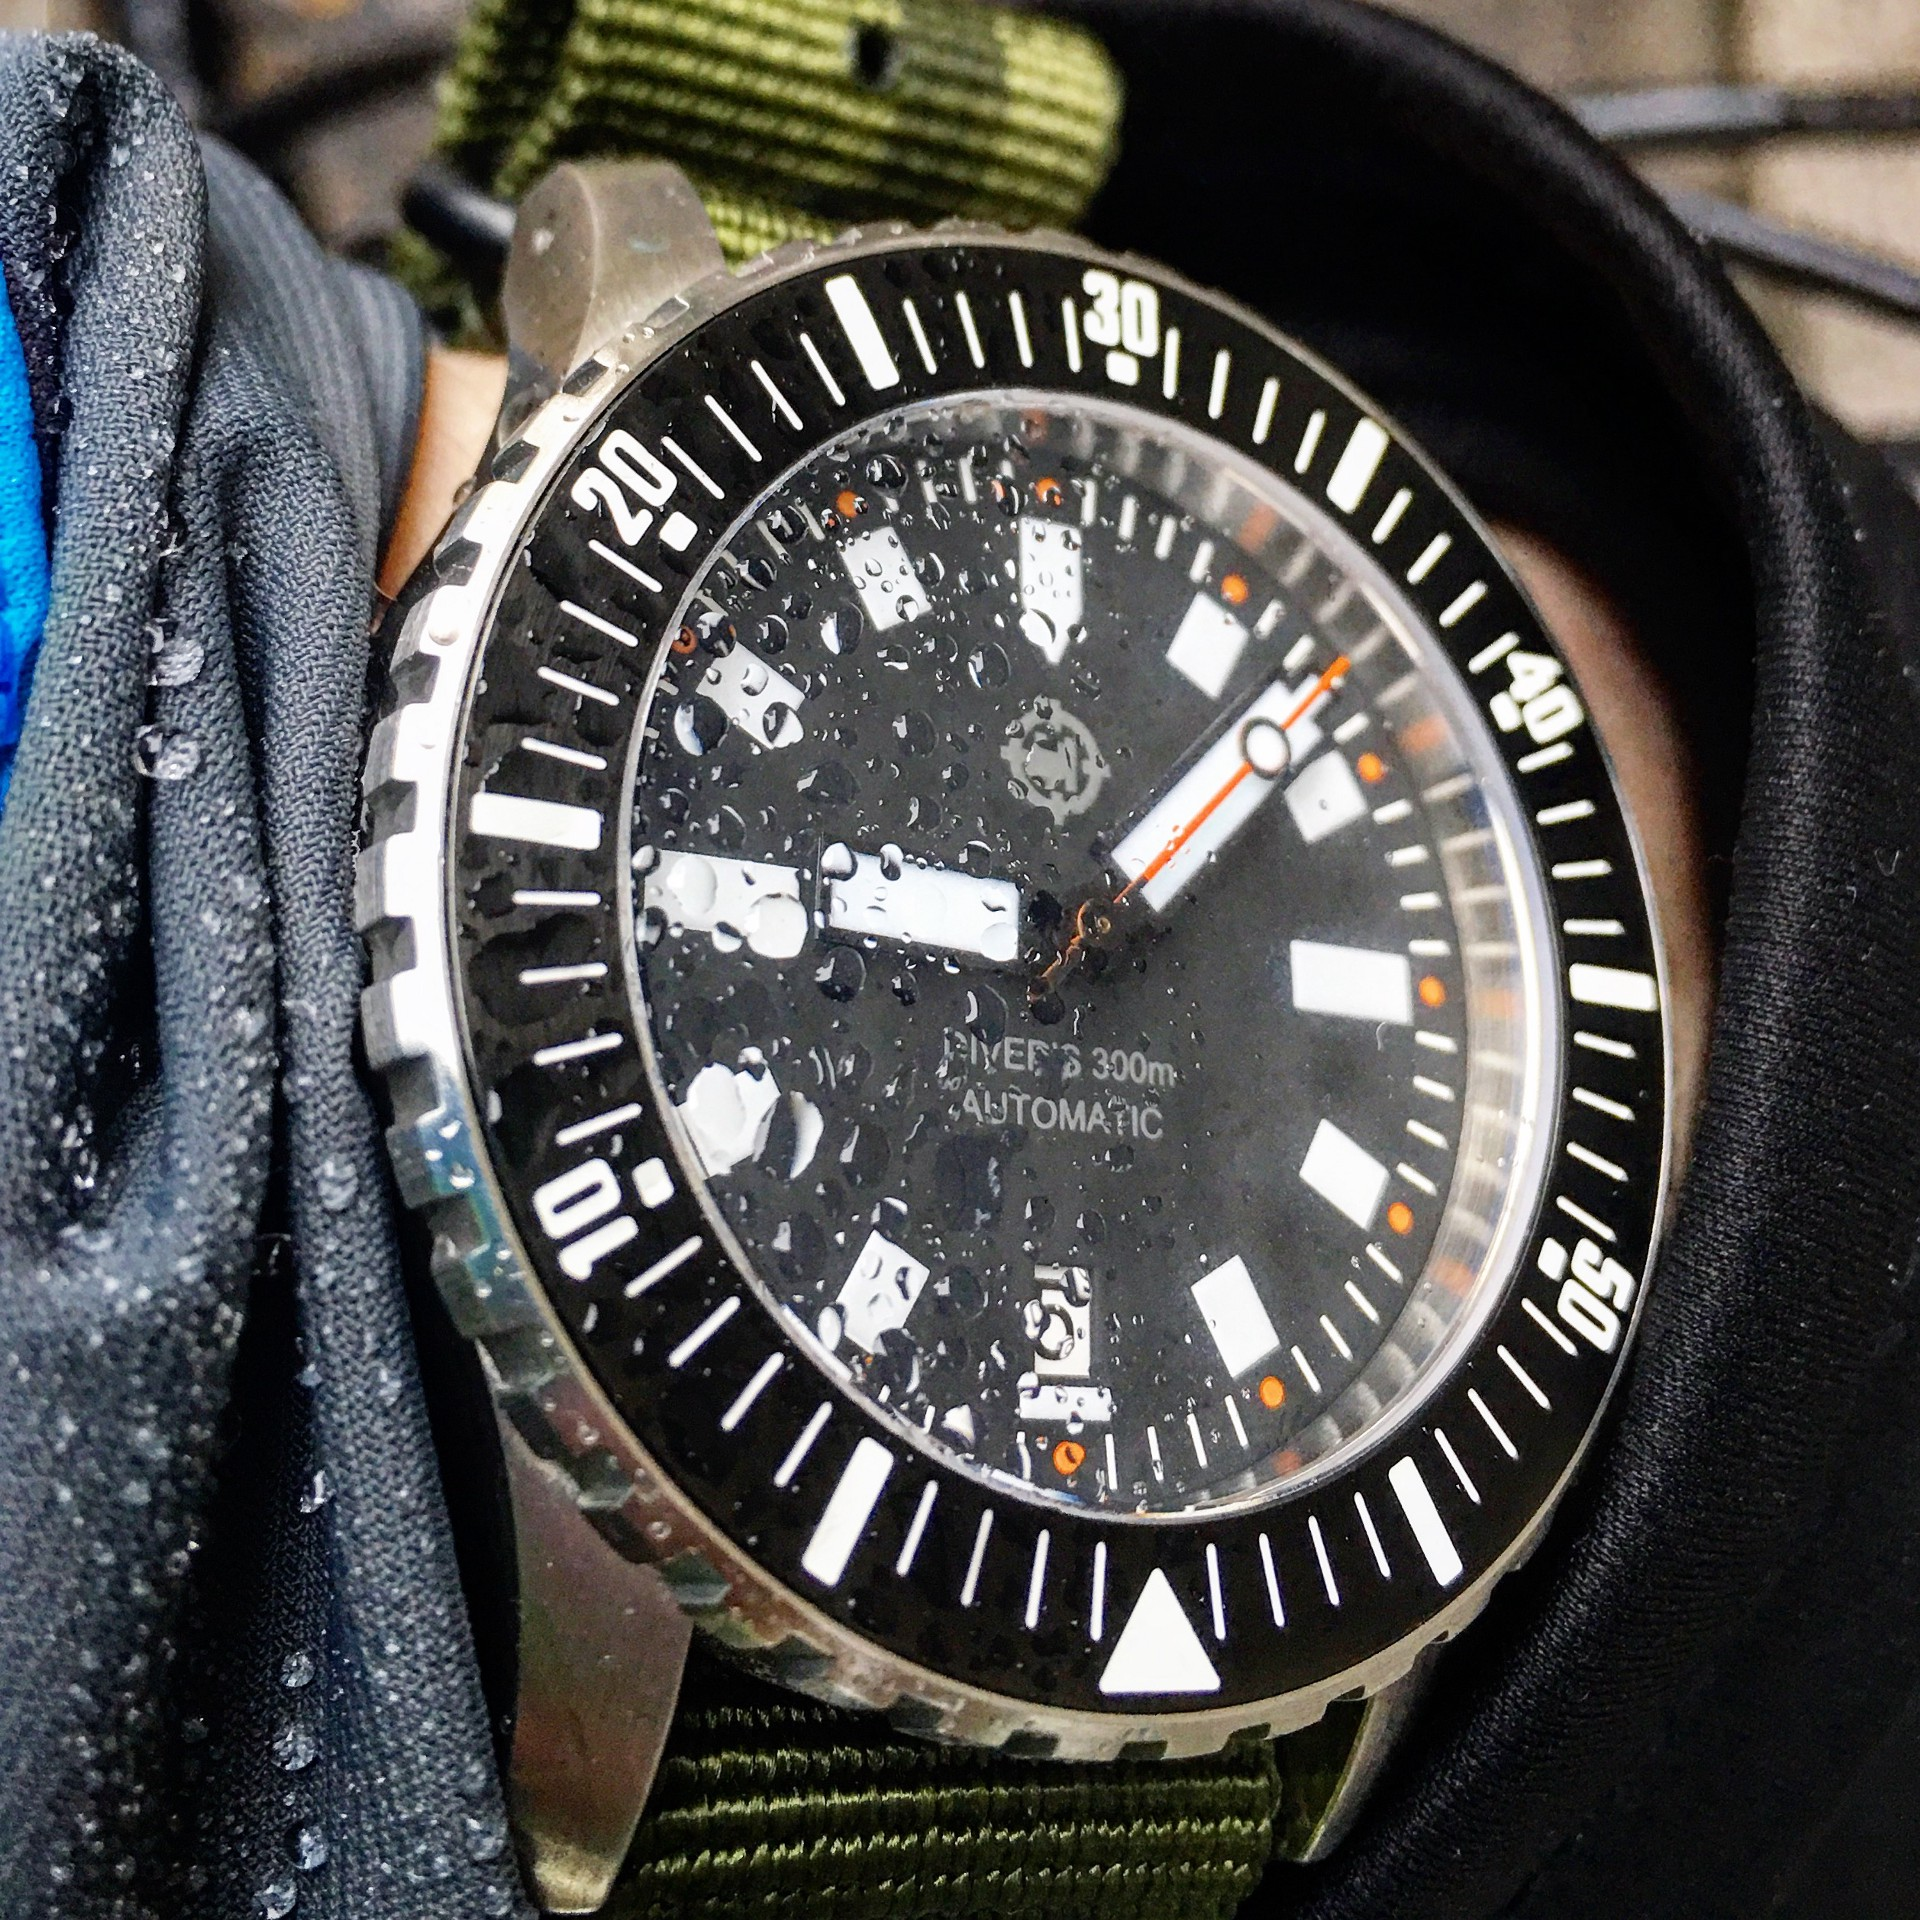 western lumed collection standard axial markers watches and the omega a pip img required position minute watch seamaster under ocean divers there is iso my as co planet micro at